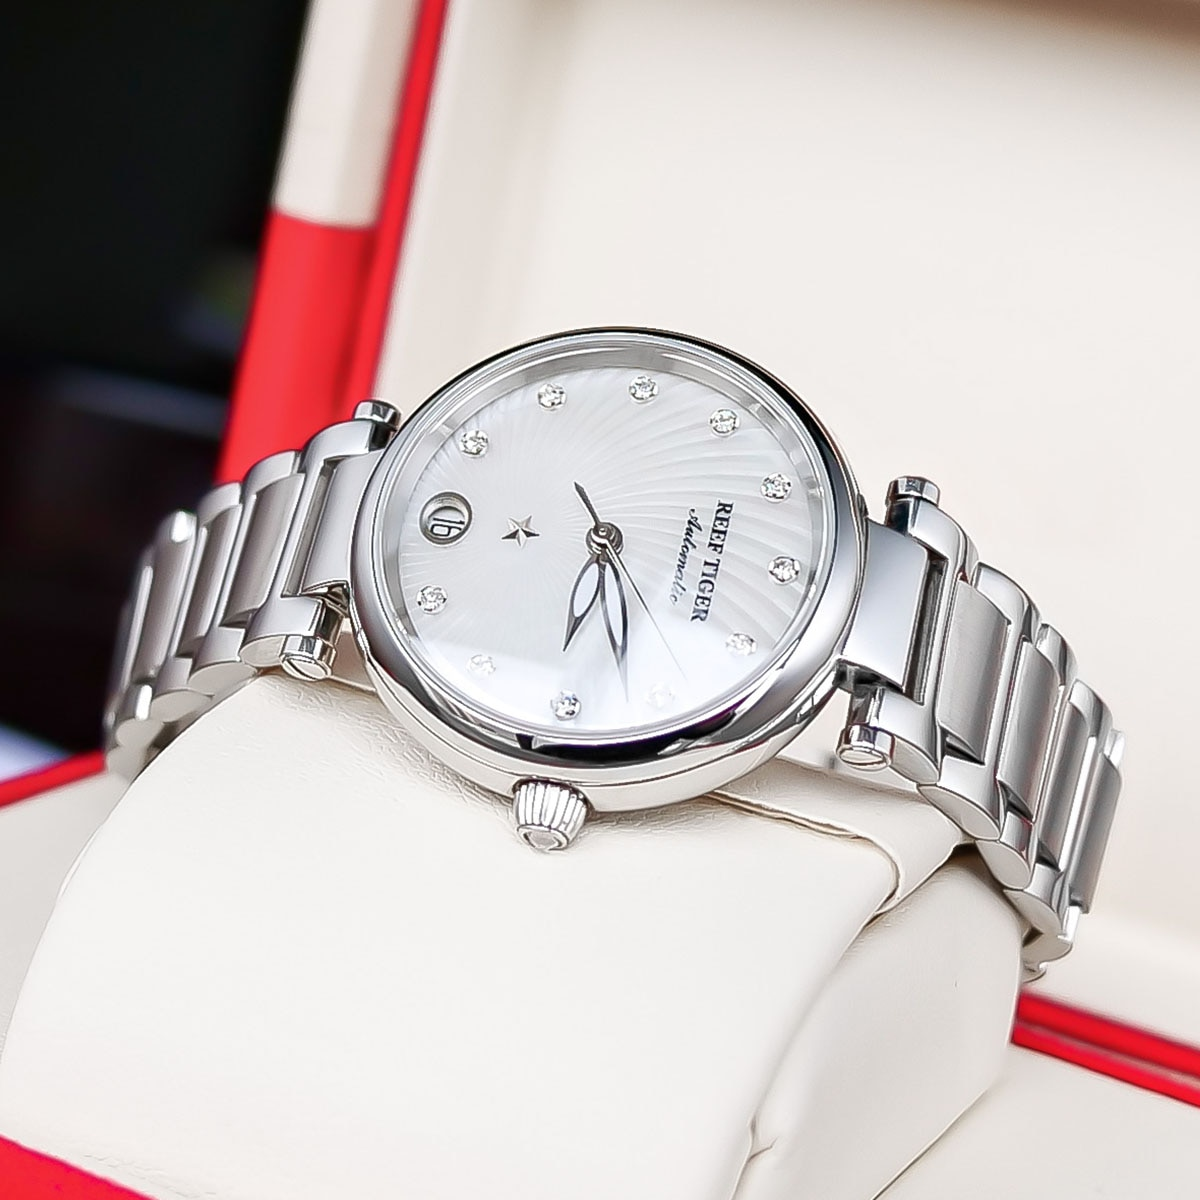 2021 New Reef Tiger/RT Top Brand Luxury Fashion Watches Women Stainless Steel Diamond Automatic Wristwatch reloj mujer RGA1590 enlarge